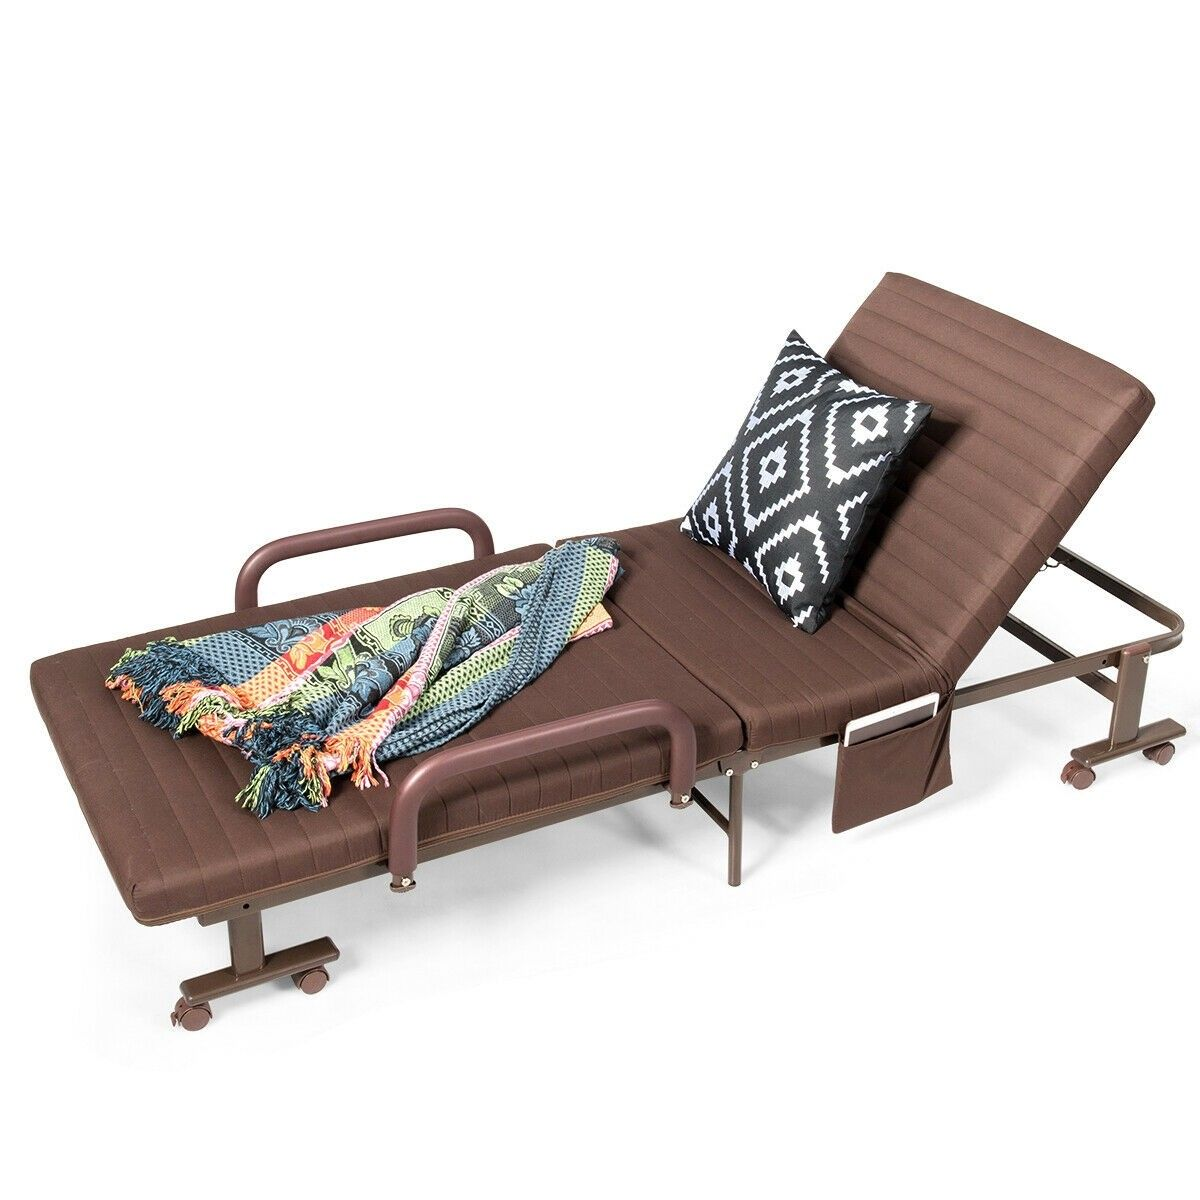 Adjustable Guest Single Bed Lounge Portable Wheels 149 95 Free Shipping This Versatile Folding Bed Is Suitable Patio Chaise Lounge Foldable Bed Patio Chaise